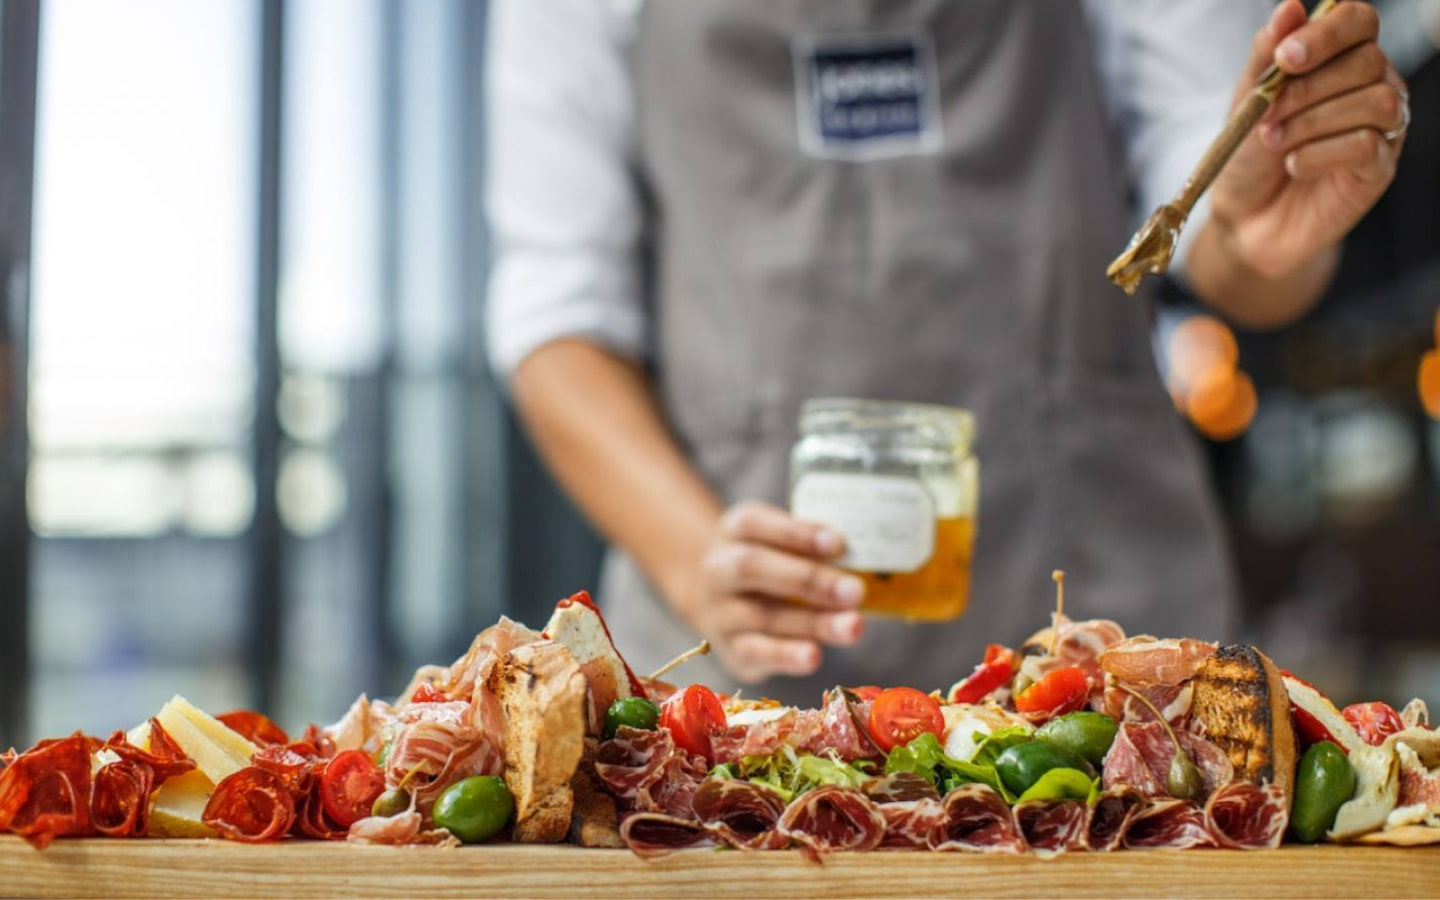 Image of different cuts of meat and vegetables with a chef in the background